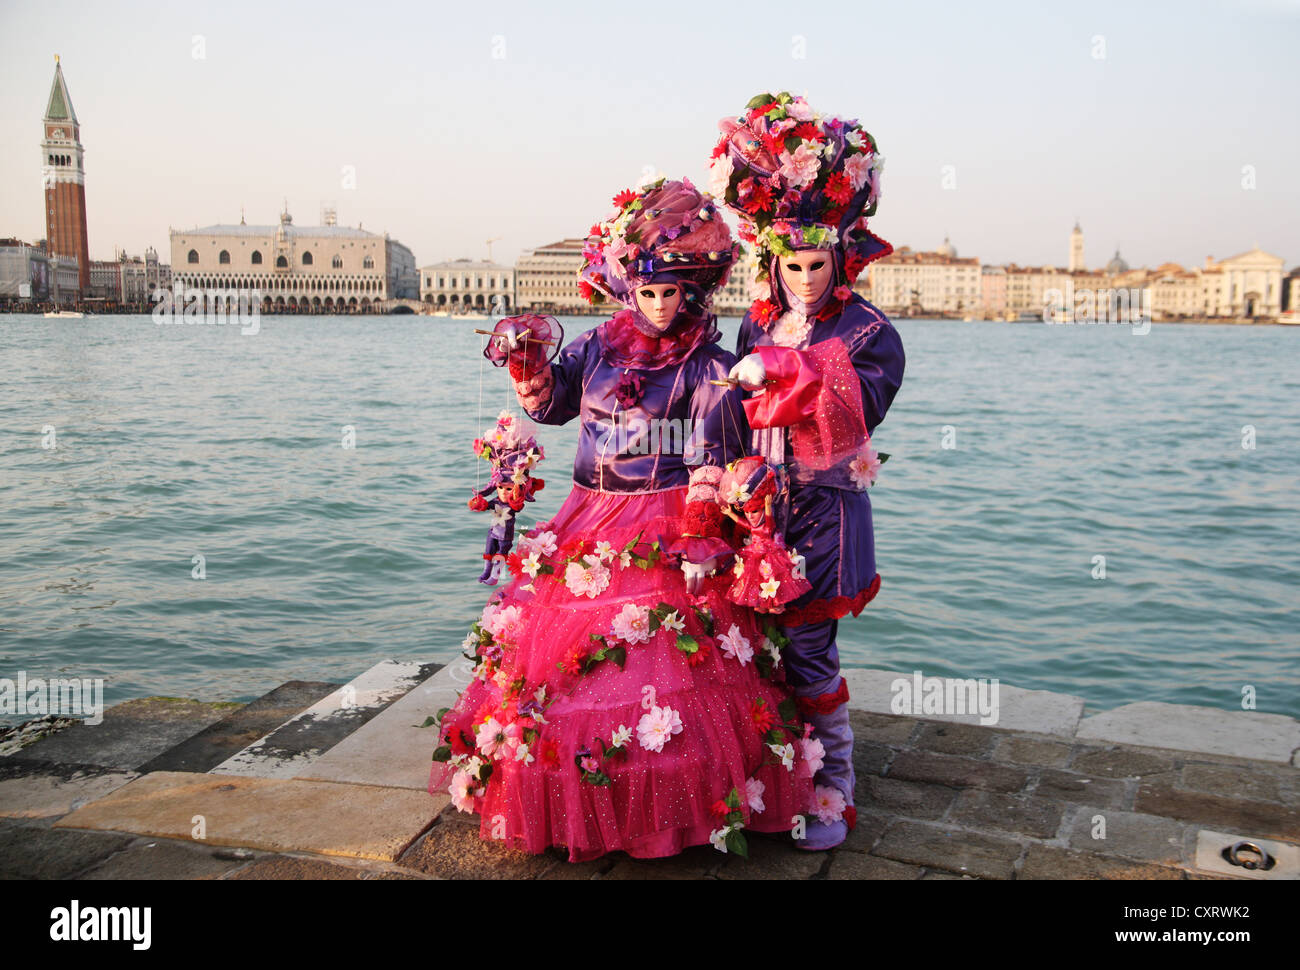 Mask wearers, Carnival in Venice, Italy, Europe Stock Photo